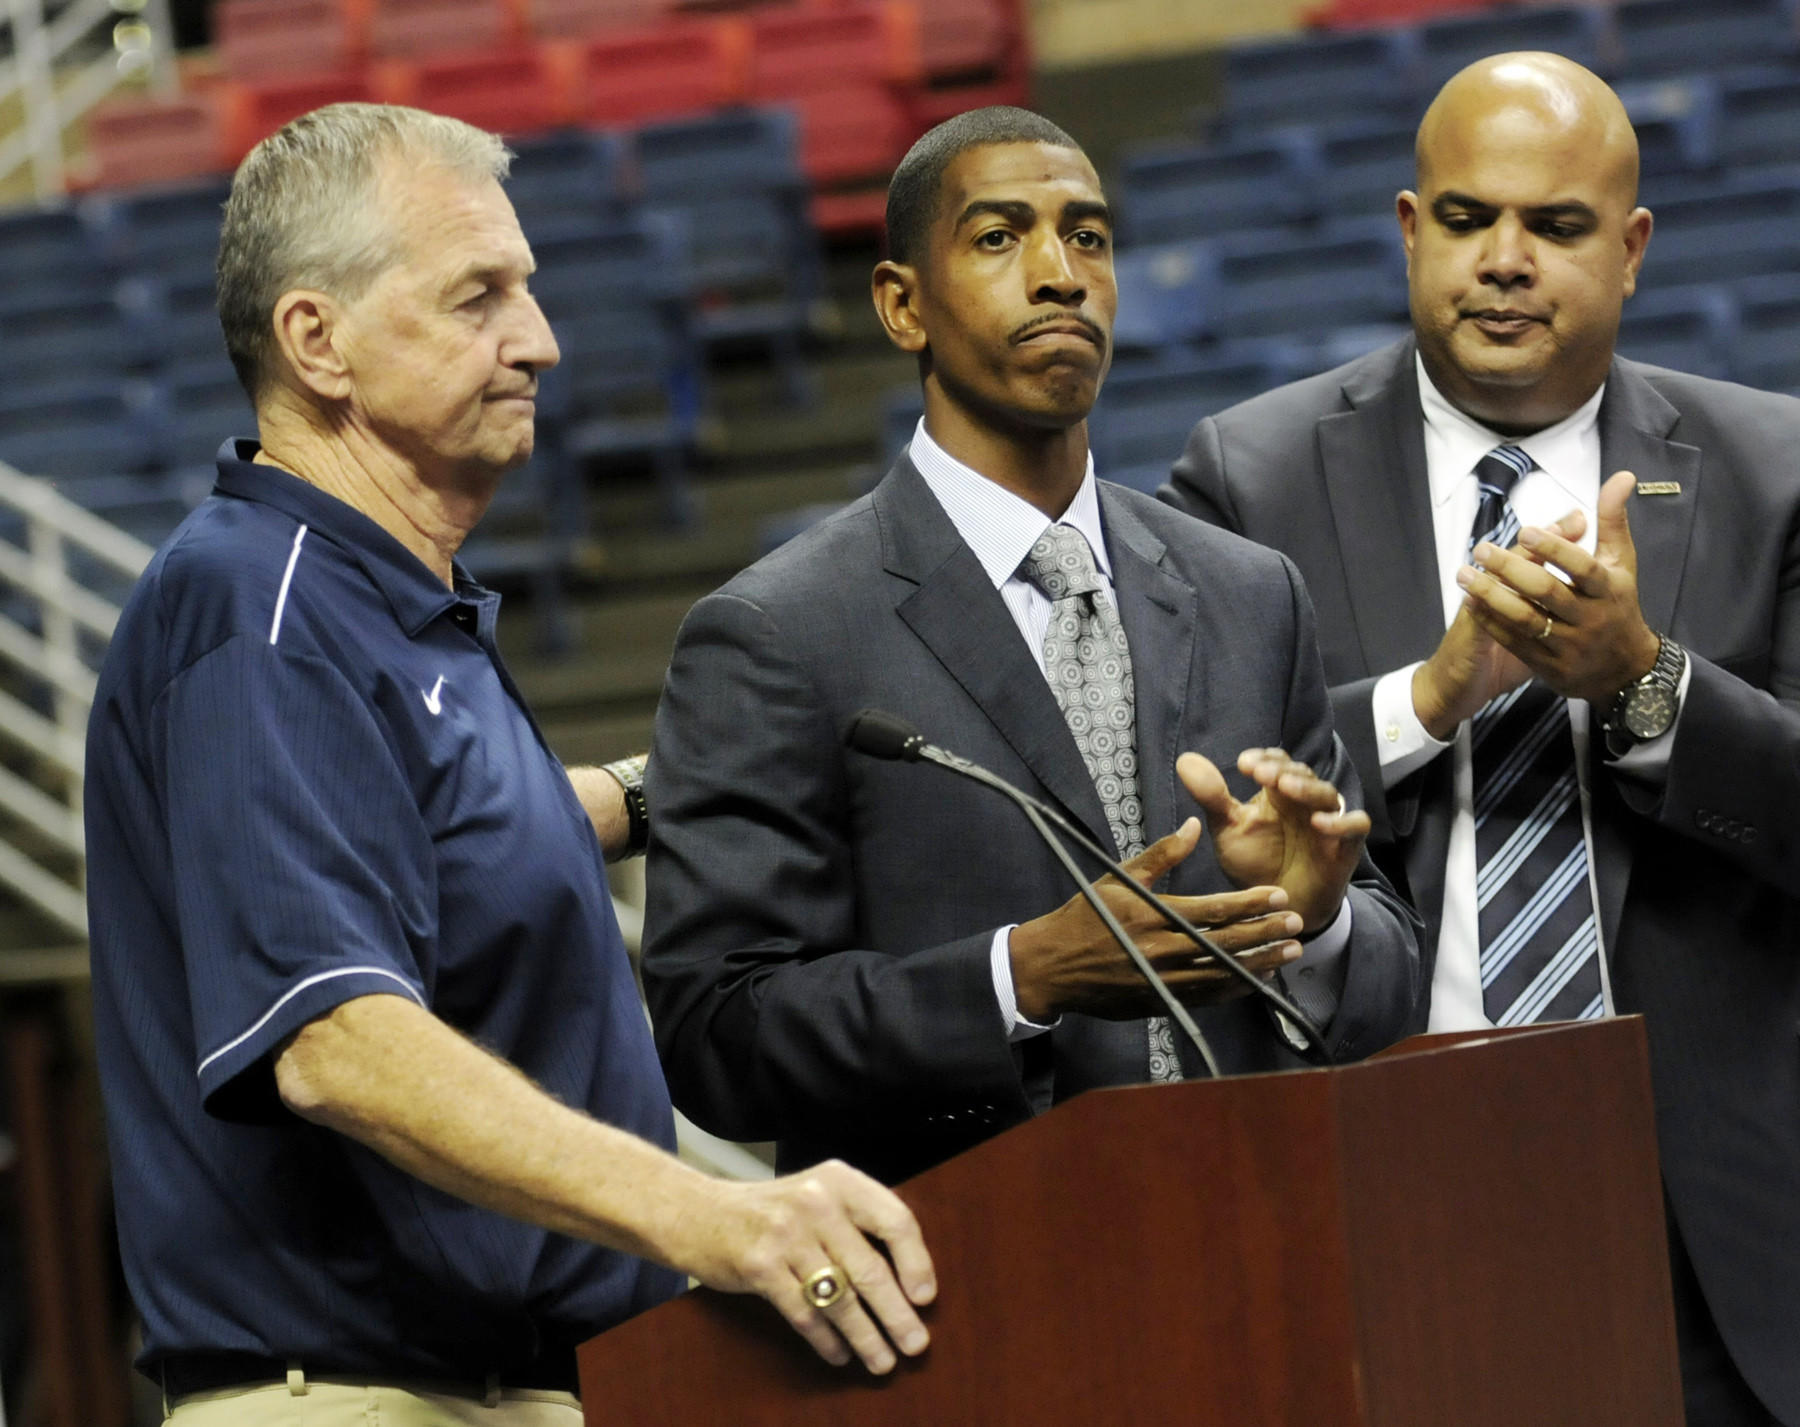 When Jim Calhoun announced his retirement in September 2012 after 26 years as head coach, Athletic Director Warde Manuel turned to Kevin Ollie. After winning the 2014 national championship, Ollie has signed a new five-year contract.